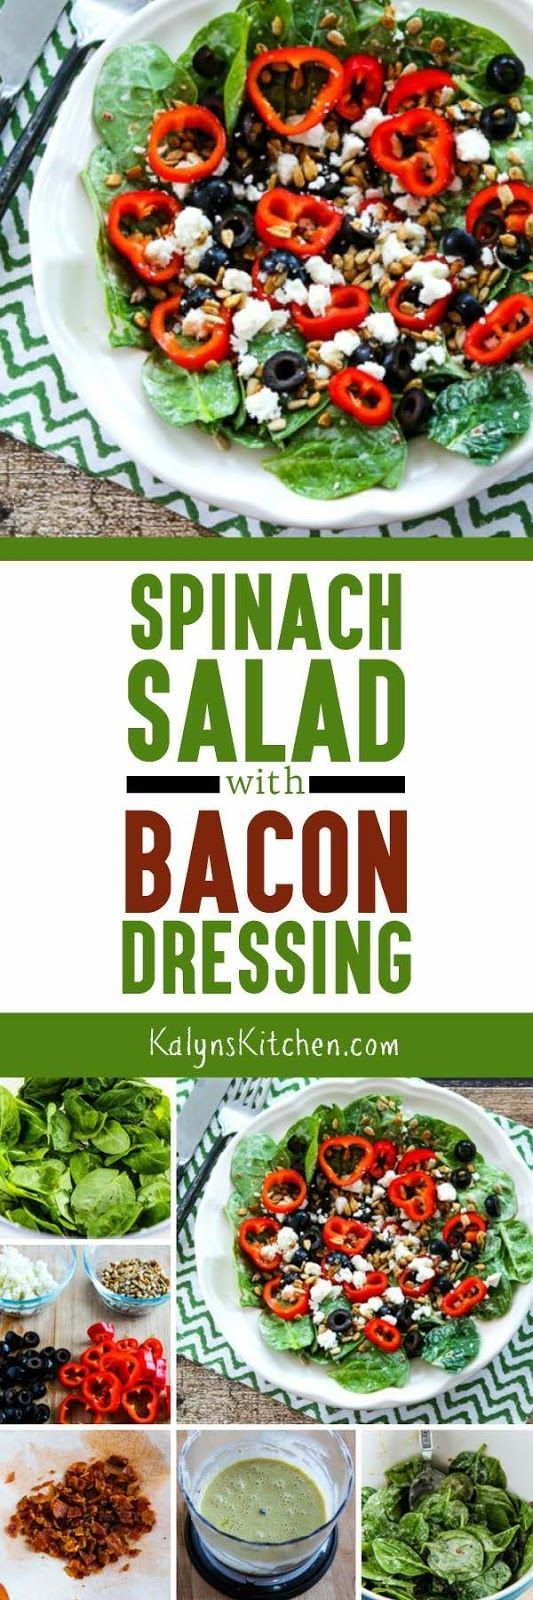 Recipe for Spinach Salad with Bacon Dressing (Low-Carb, Gluten-Free)